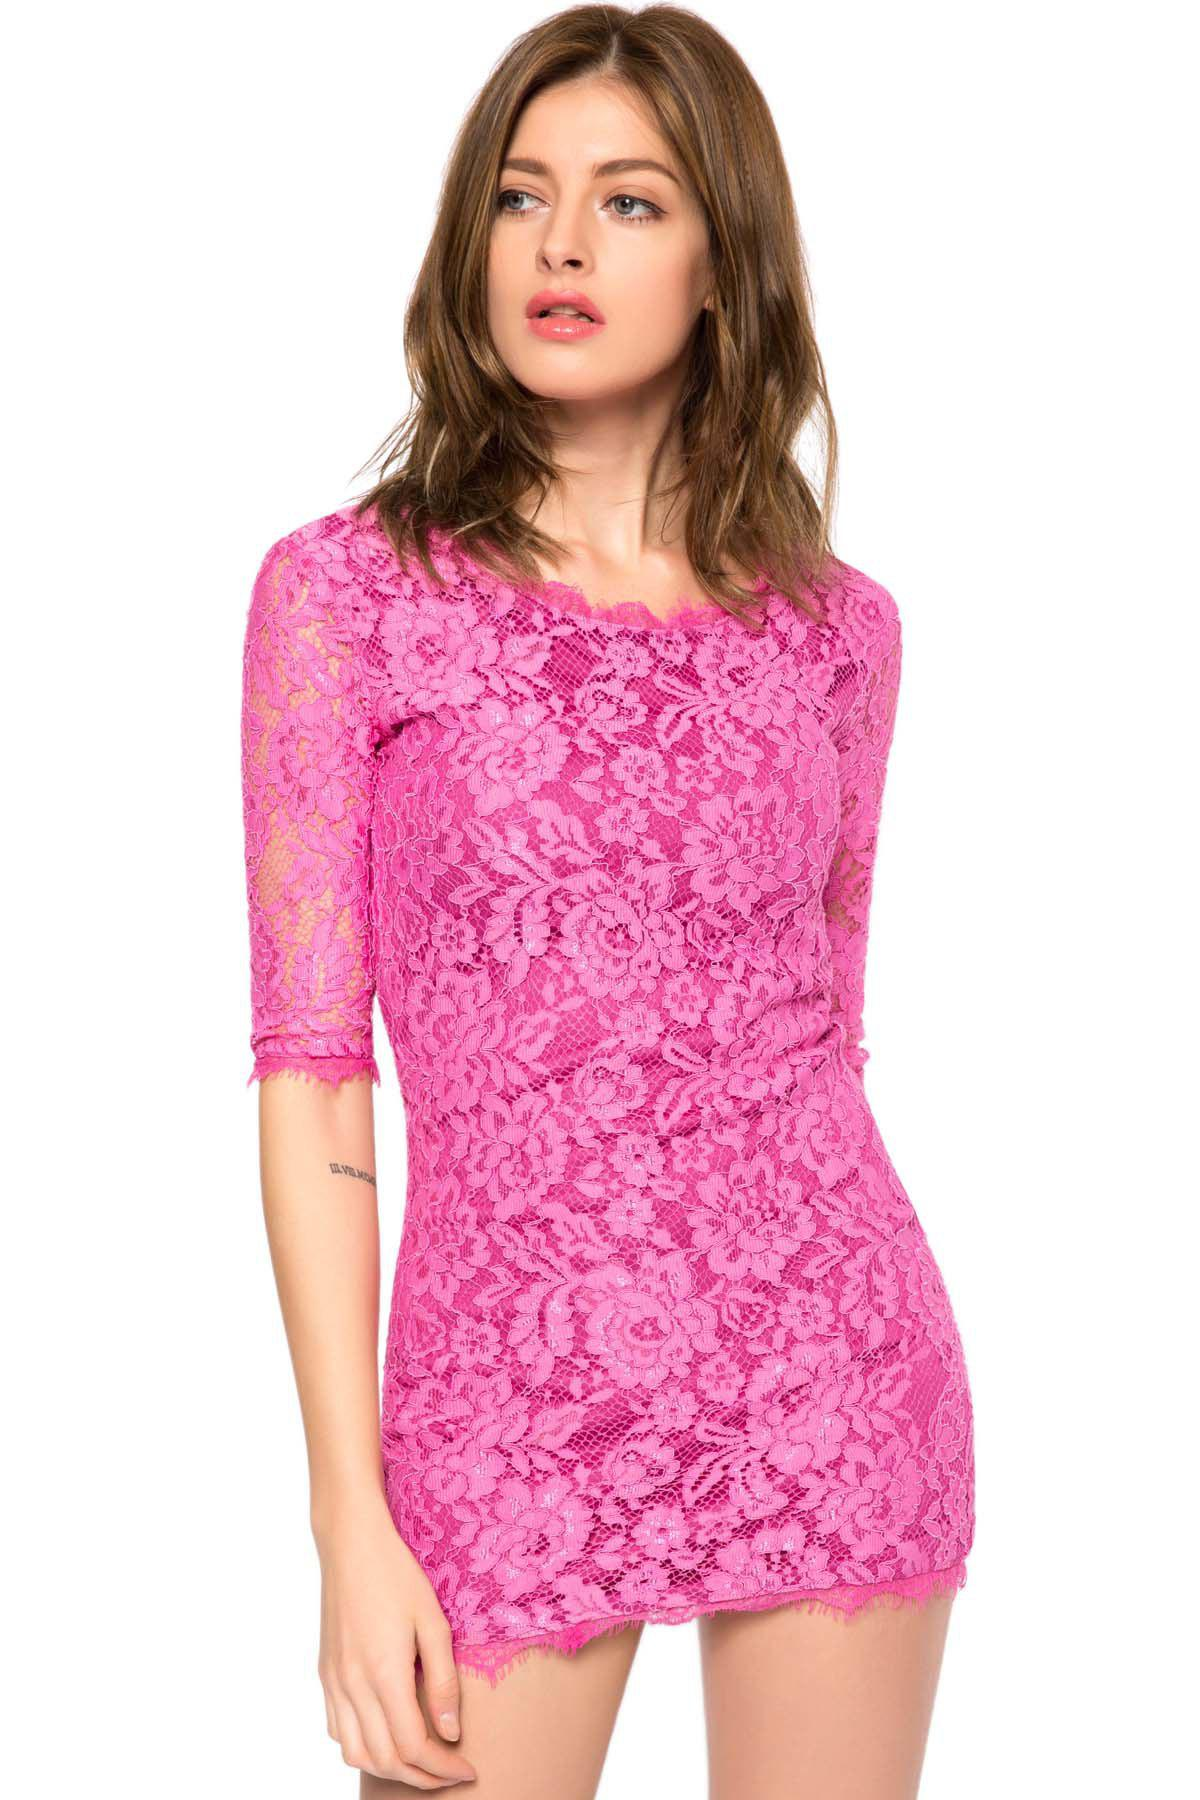 Trendy Style Scoop Collar 3/4 Sleeve Solid Color Slimming Women's Lace Dress - PURPLE M